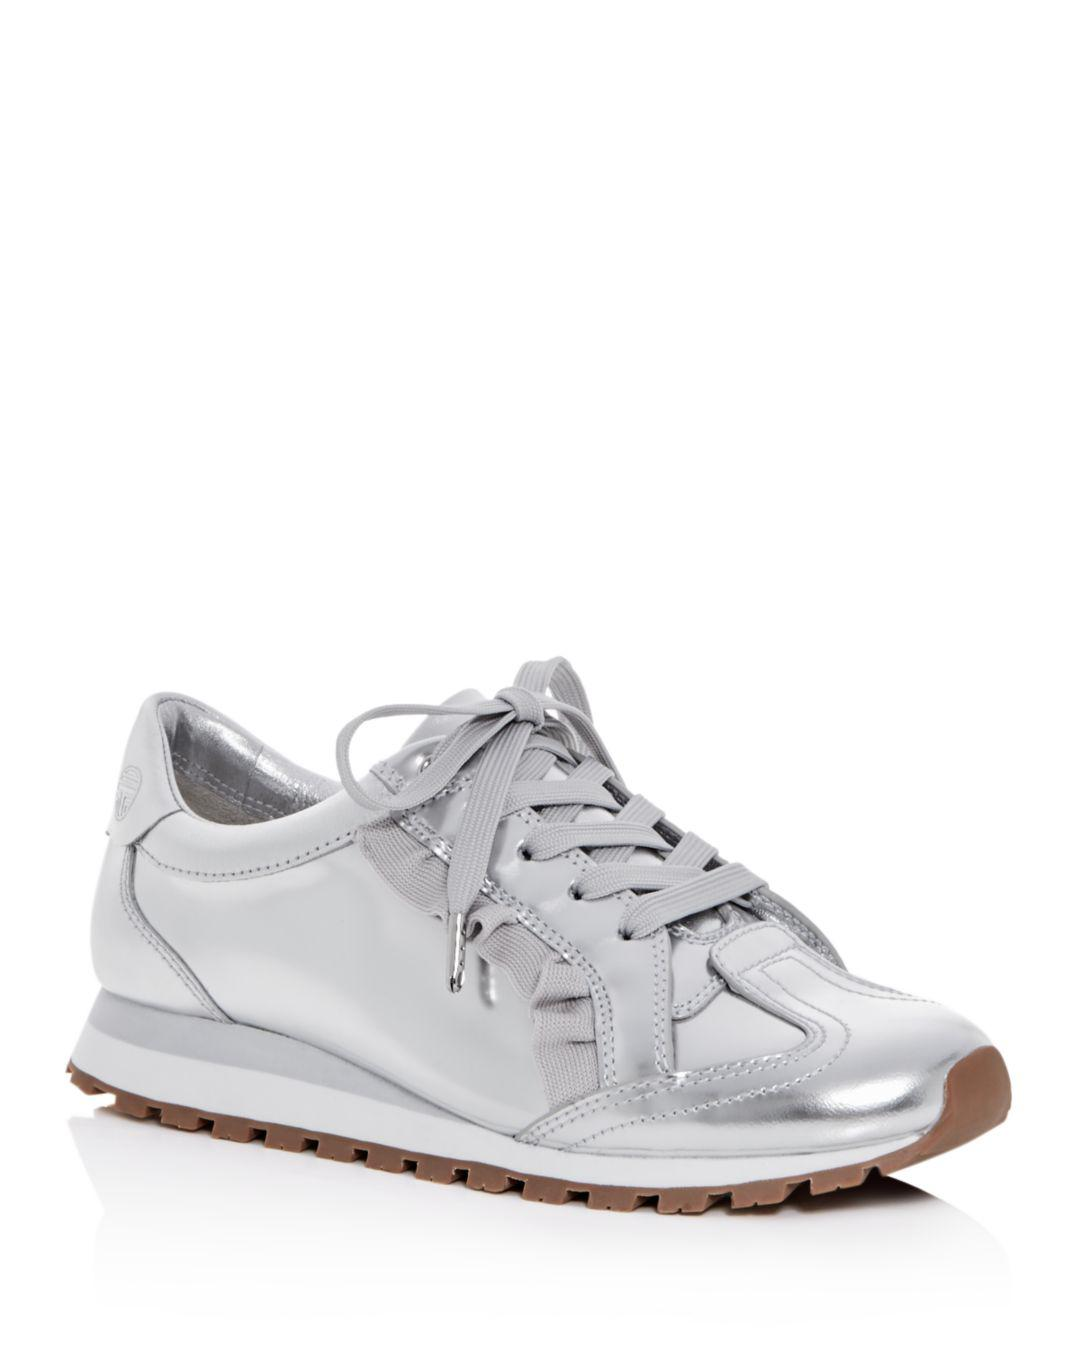 4b578e26928 Lyst - Tory Sport Women s Ruffle Trainer Leather Lace Up Sneakers in ...